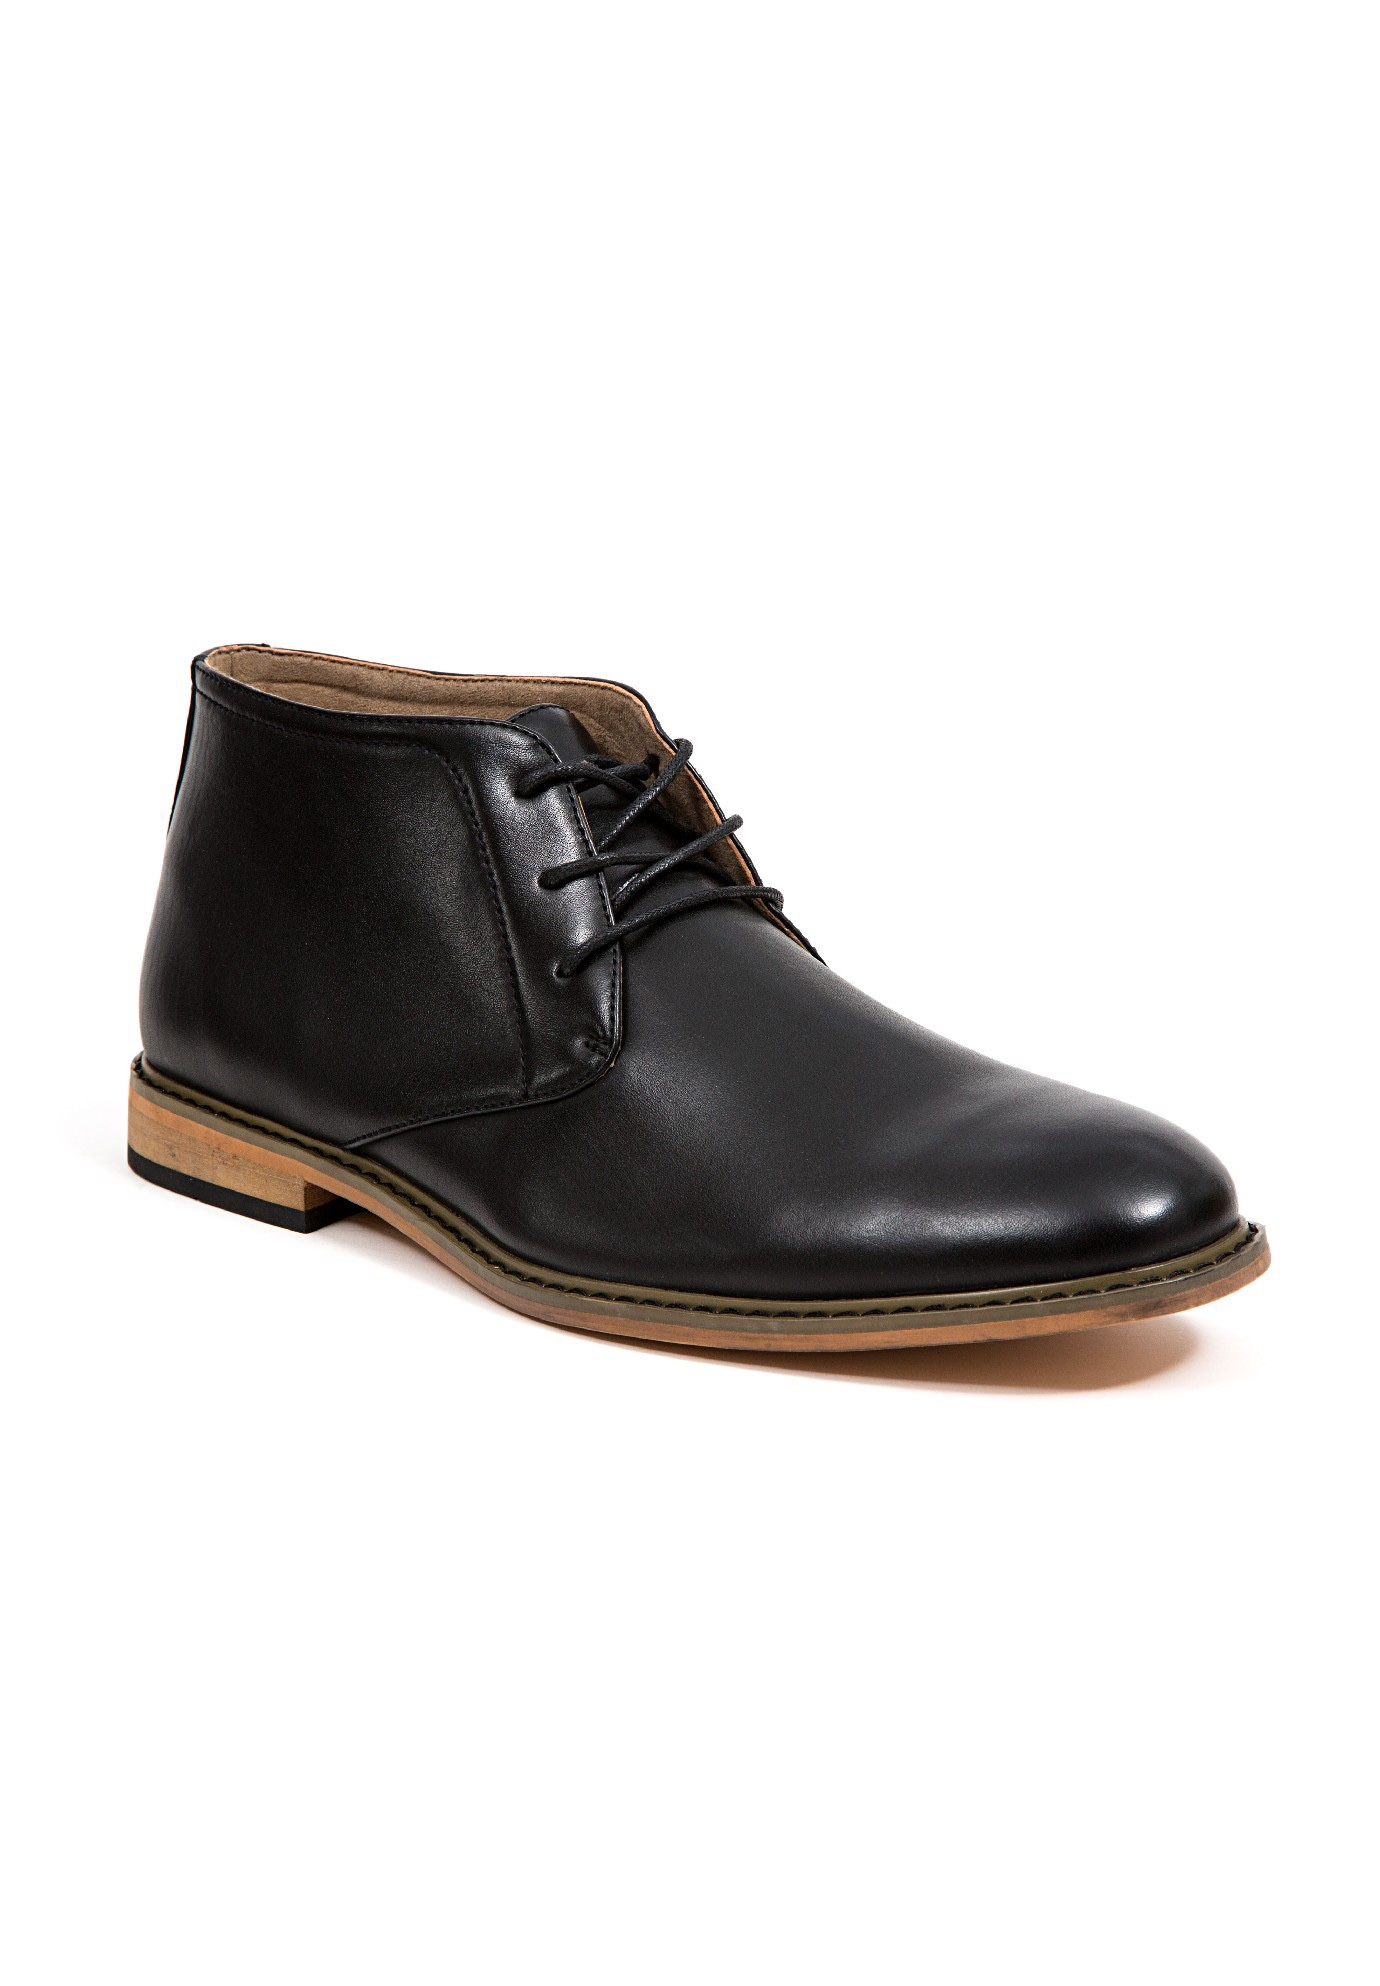 Deer Stags® James Classic Chukka Boots,